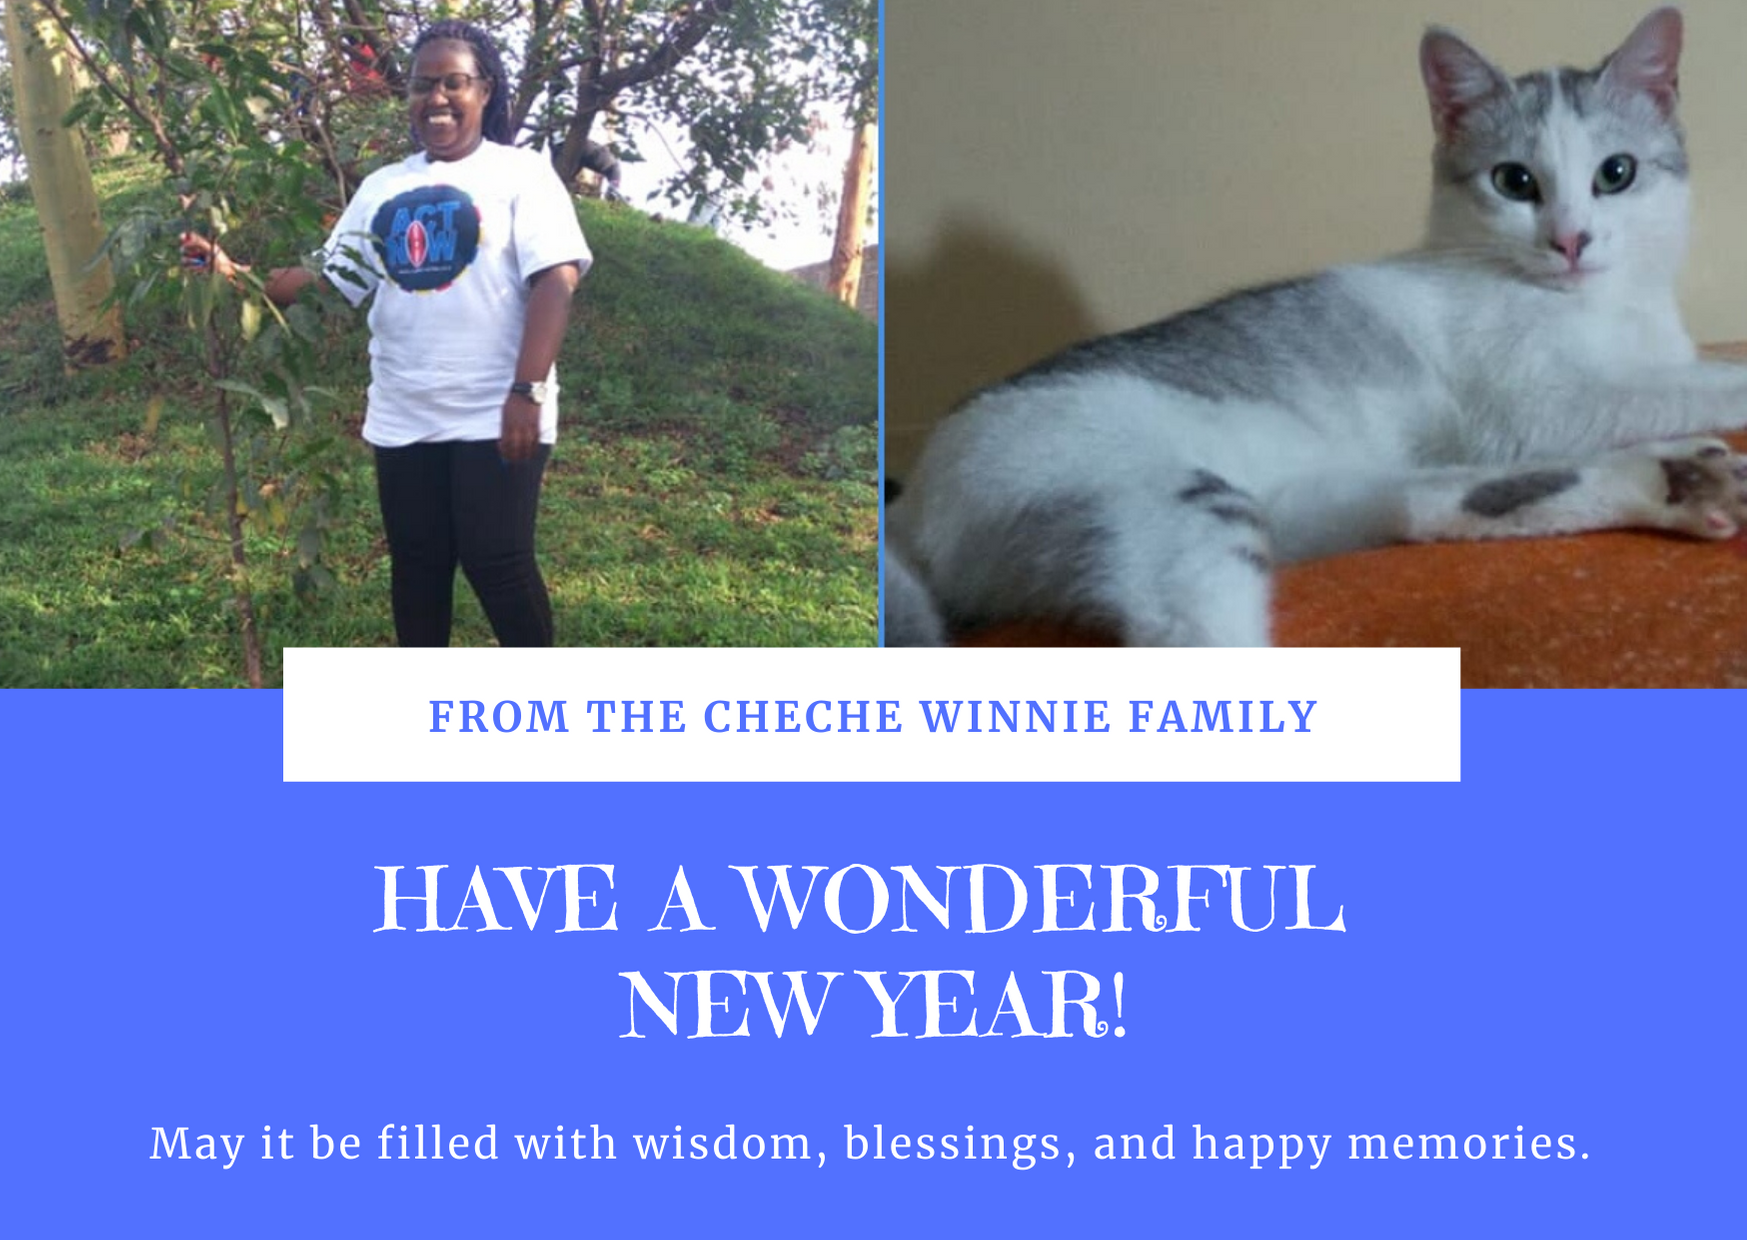 WE WISH YOU A HAPPY NEW YEAR